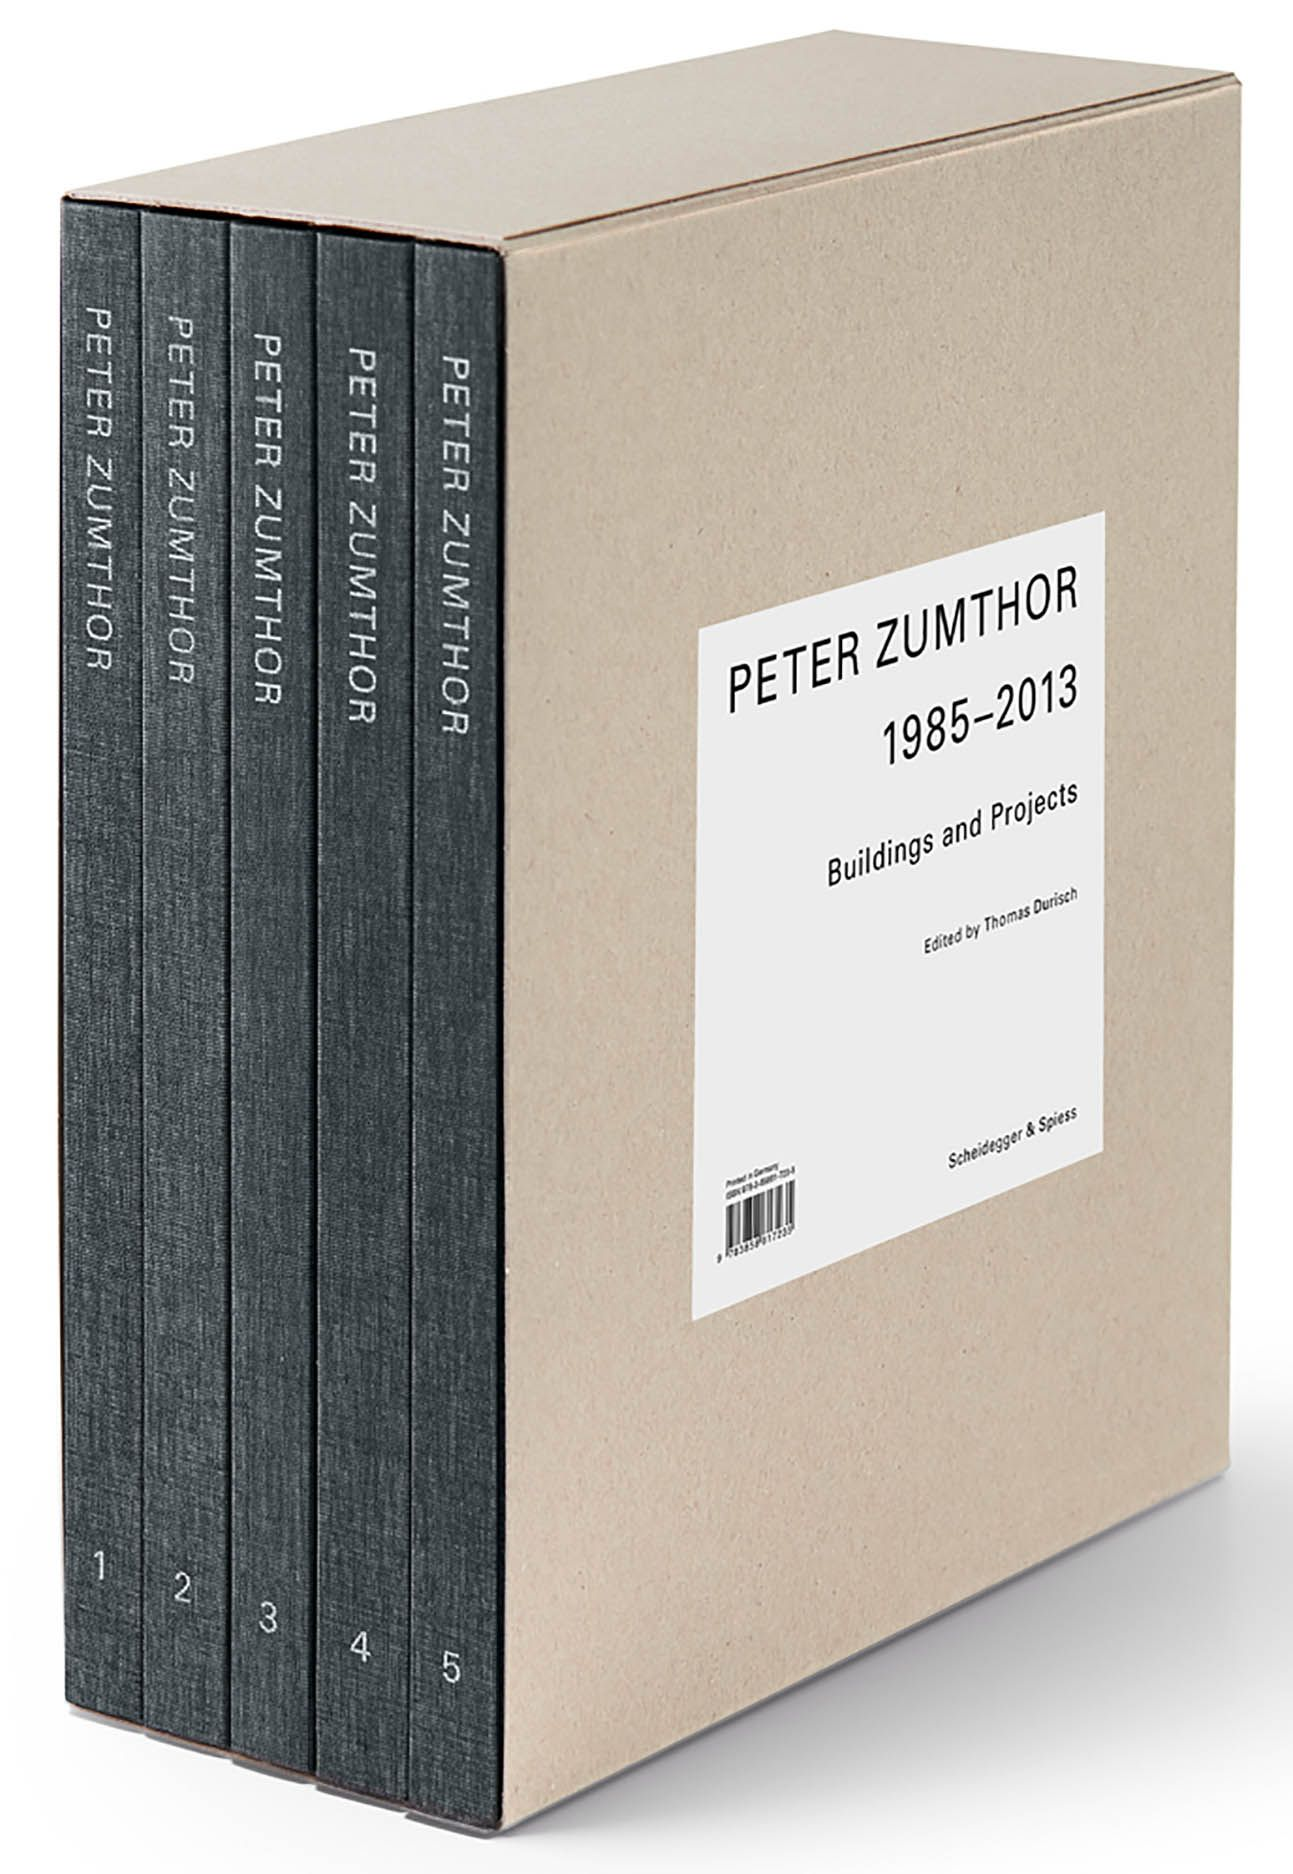 Peter Zumthor - German Edition 5 Vols.